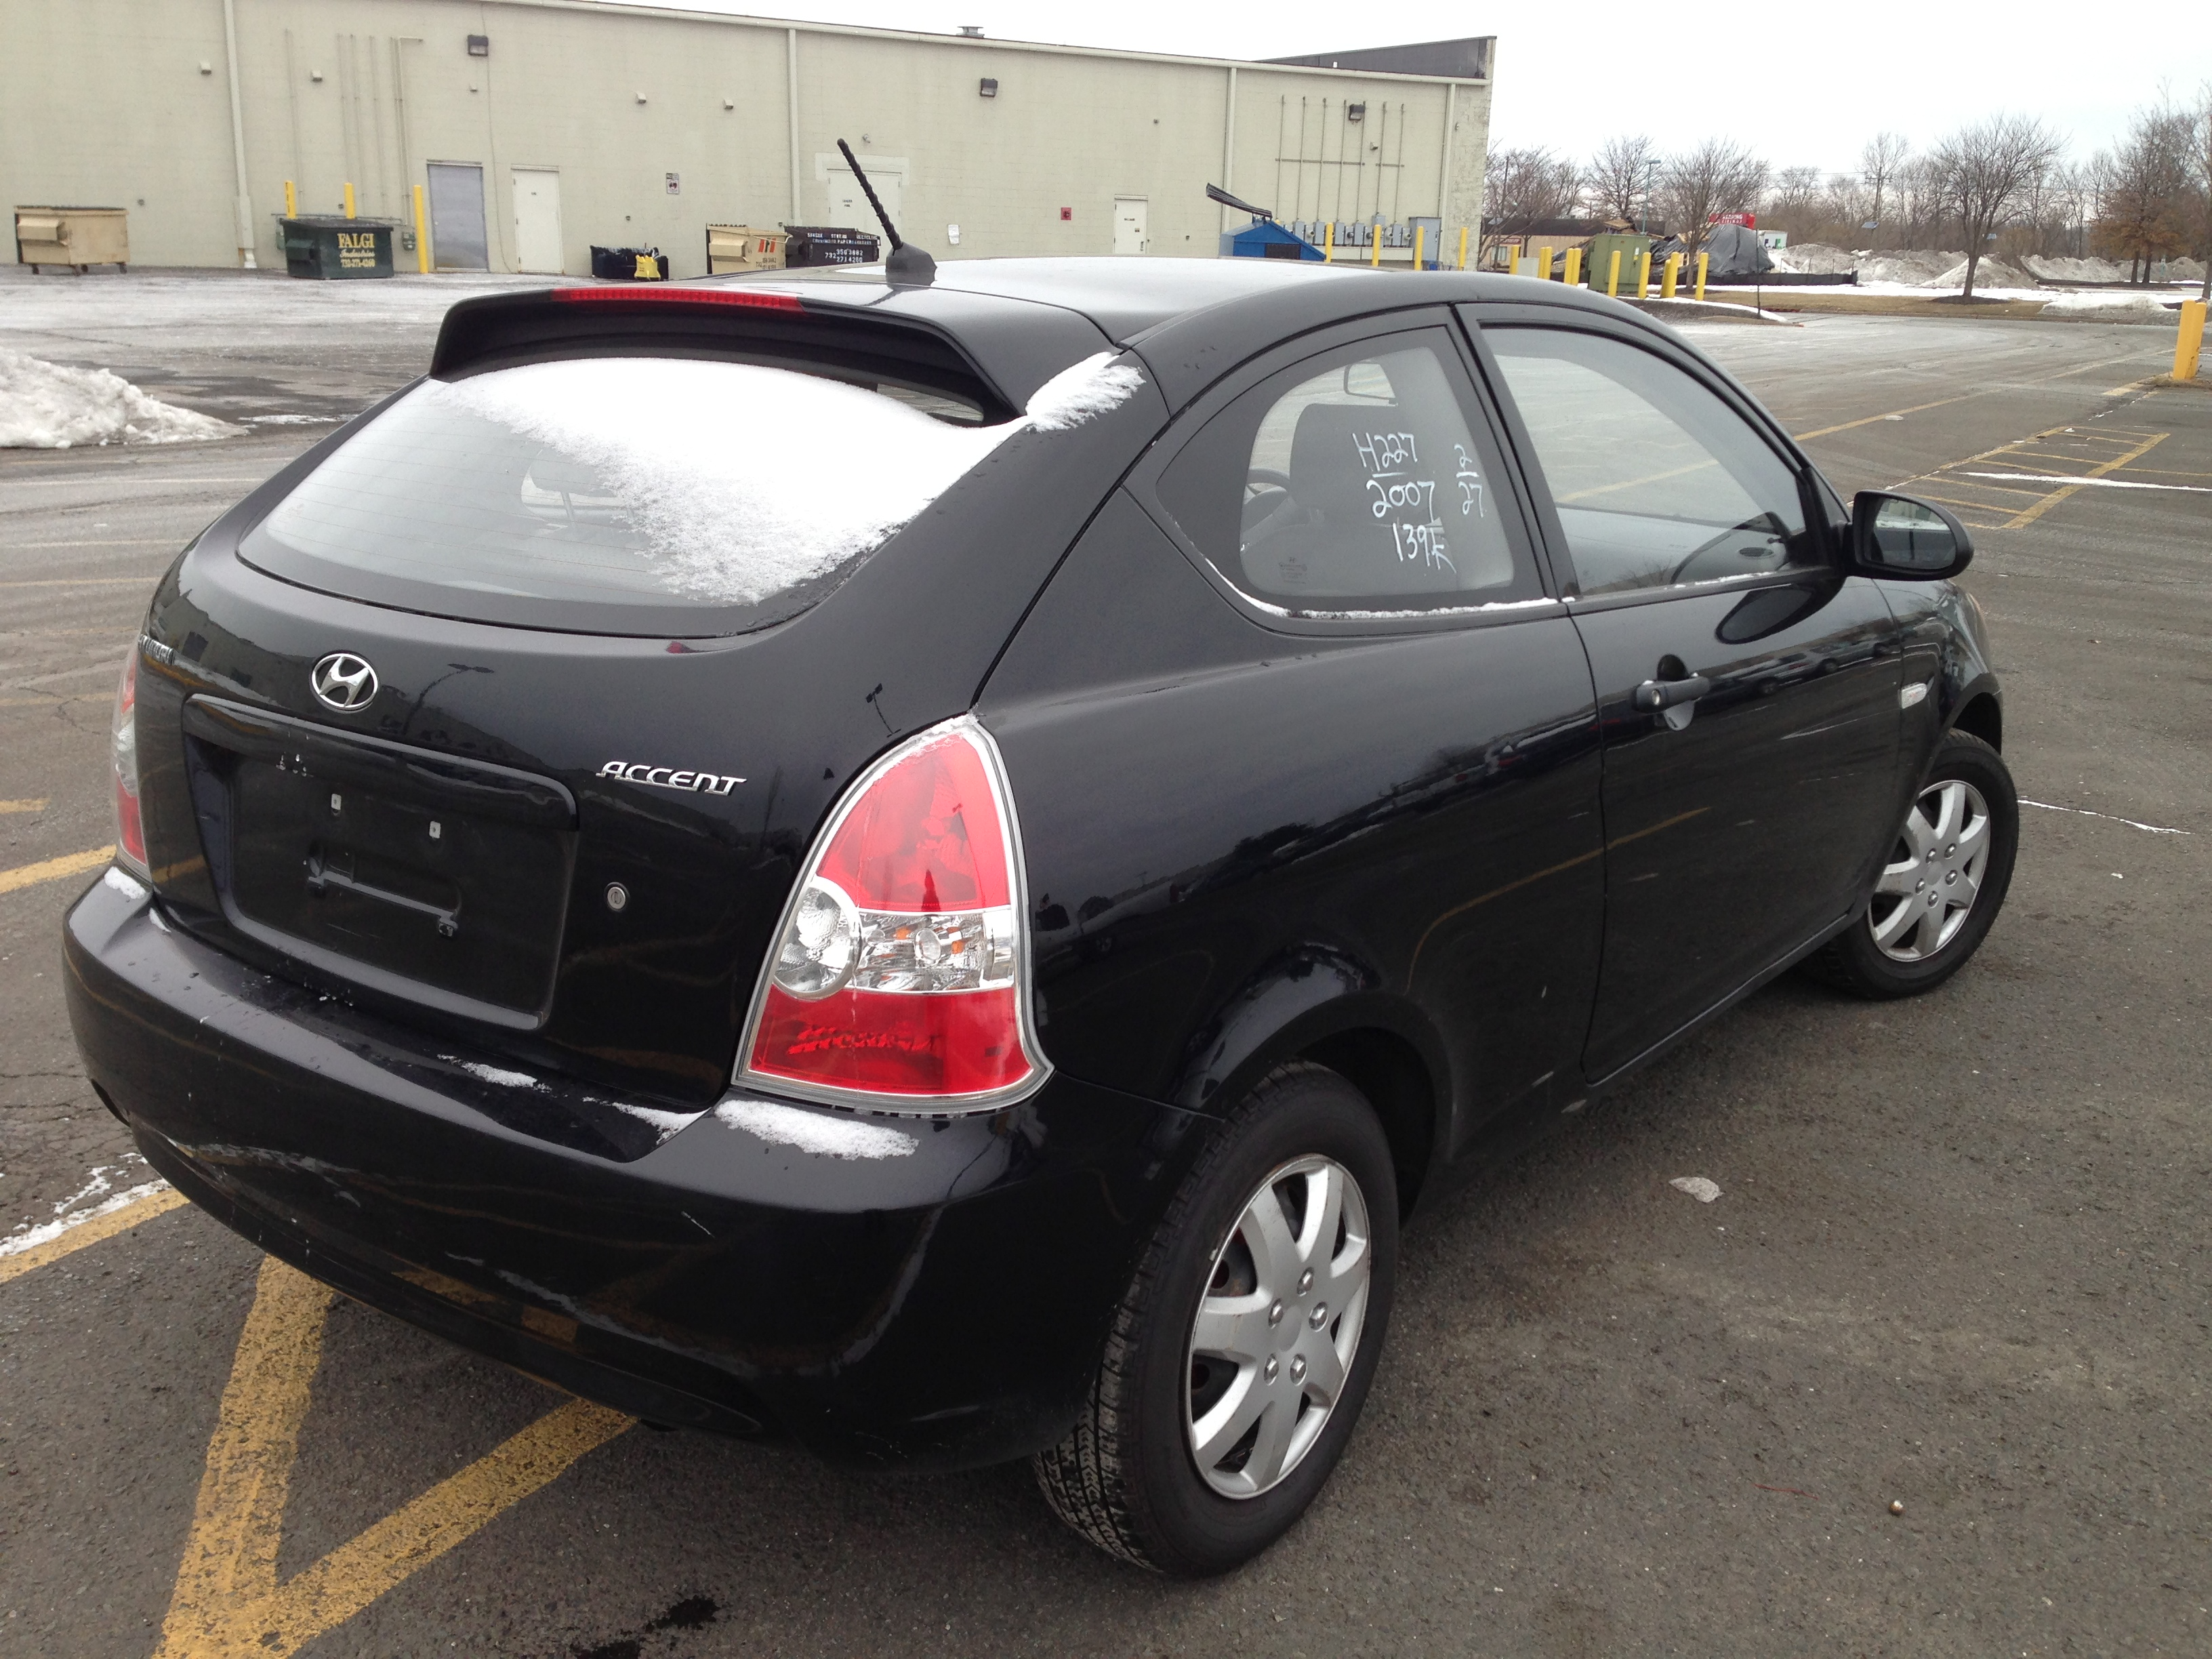 Used Car For Sale 2007 Hyundai Accent Hatchback 4 990